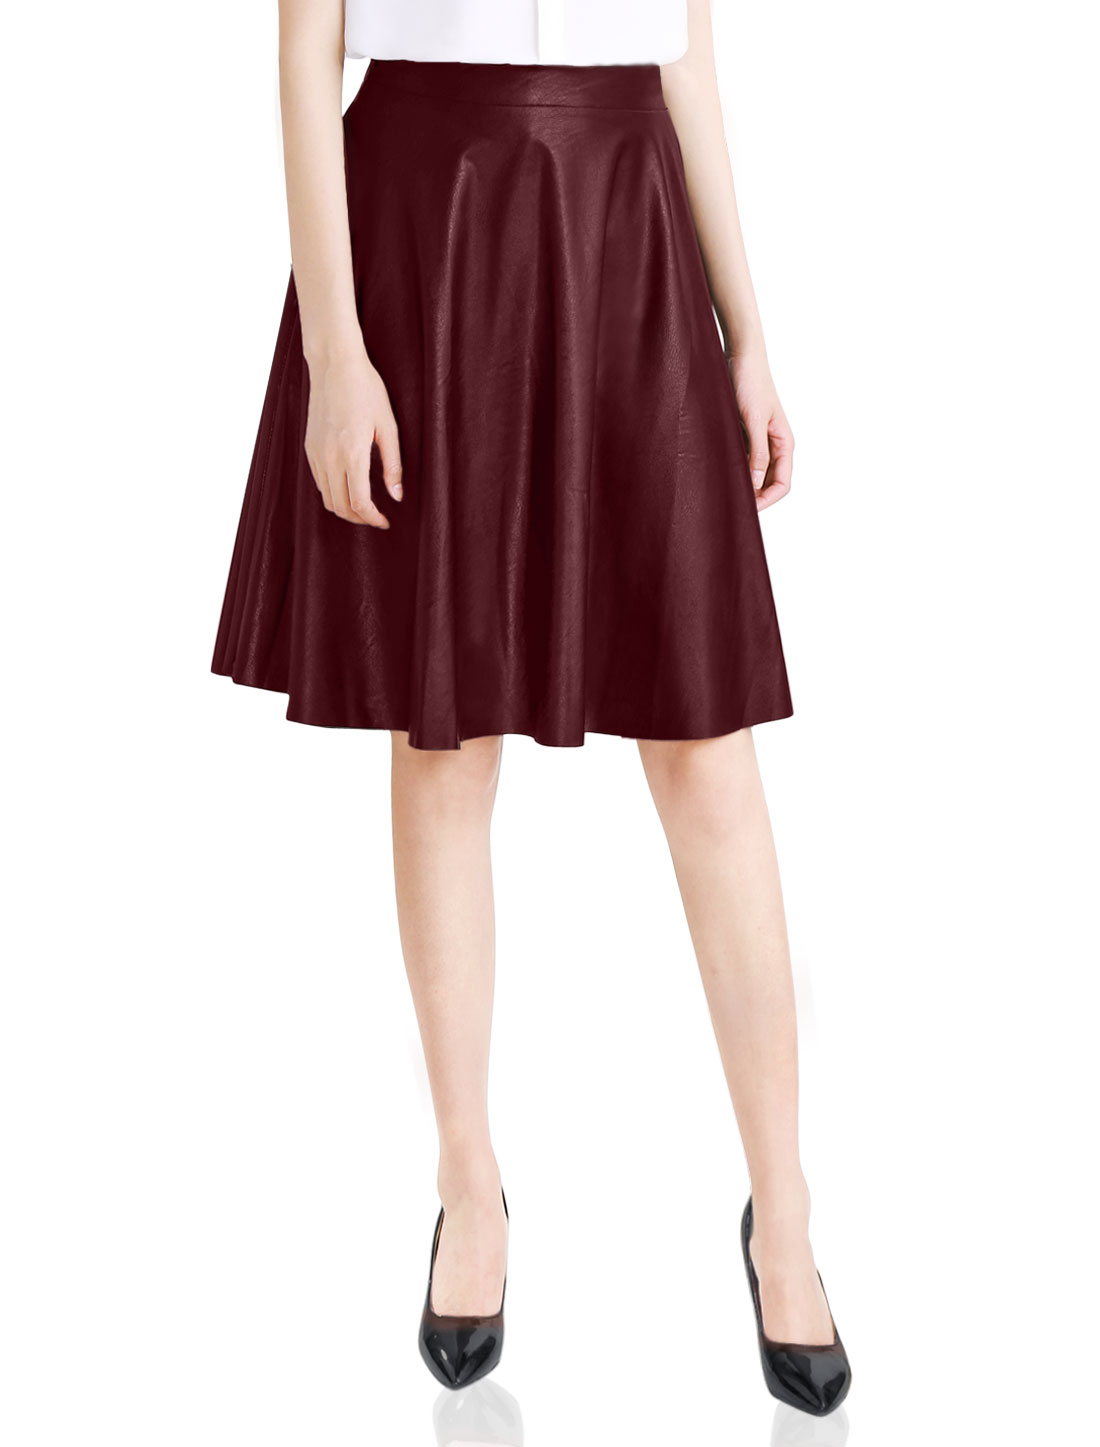 New Style Slim Elastic Waist Back Imitation Leather Skirt for Lady Burgundy L